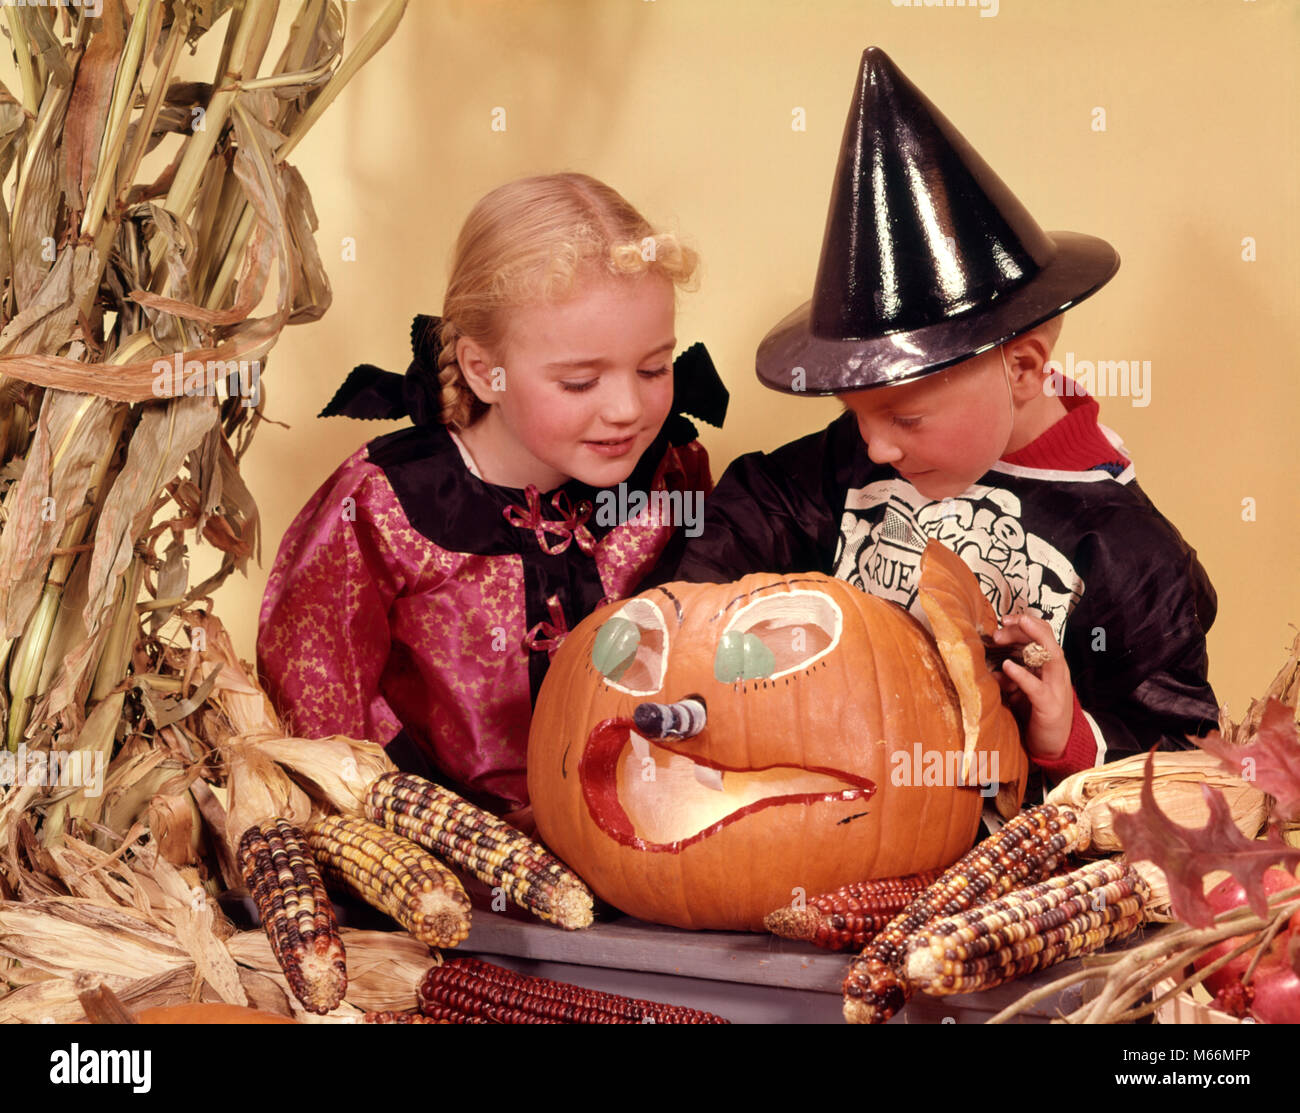 1960s TWO KIDS BLOND BROTHER AND SISTER WEARING HALLOWEEN COSTUMES LOOKING INTO CARVED JACK-O-LANTERN PUMPKIN - kh1601 HAR001 HARS LANTERN MYSTERY CAUCASIAN ...  sc 1 st  Alamy & 1960s TWO KIDS BLOND BROTHER AND SISTER WEARING HALLOWEEN COSTUMES ...